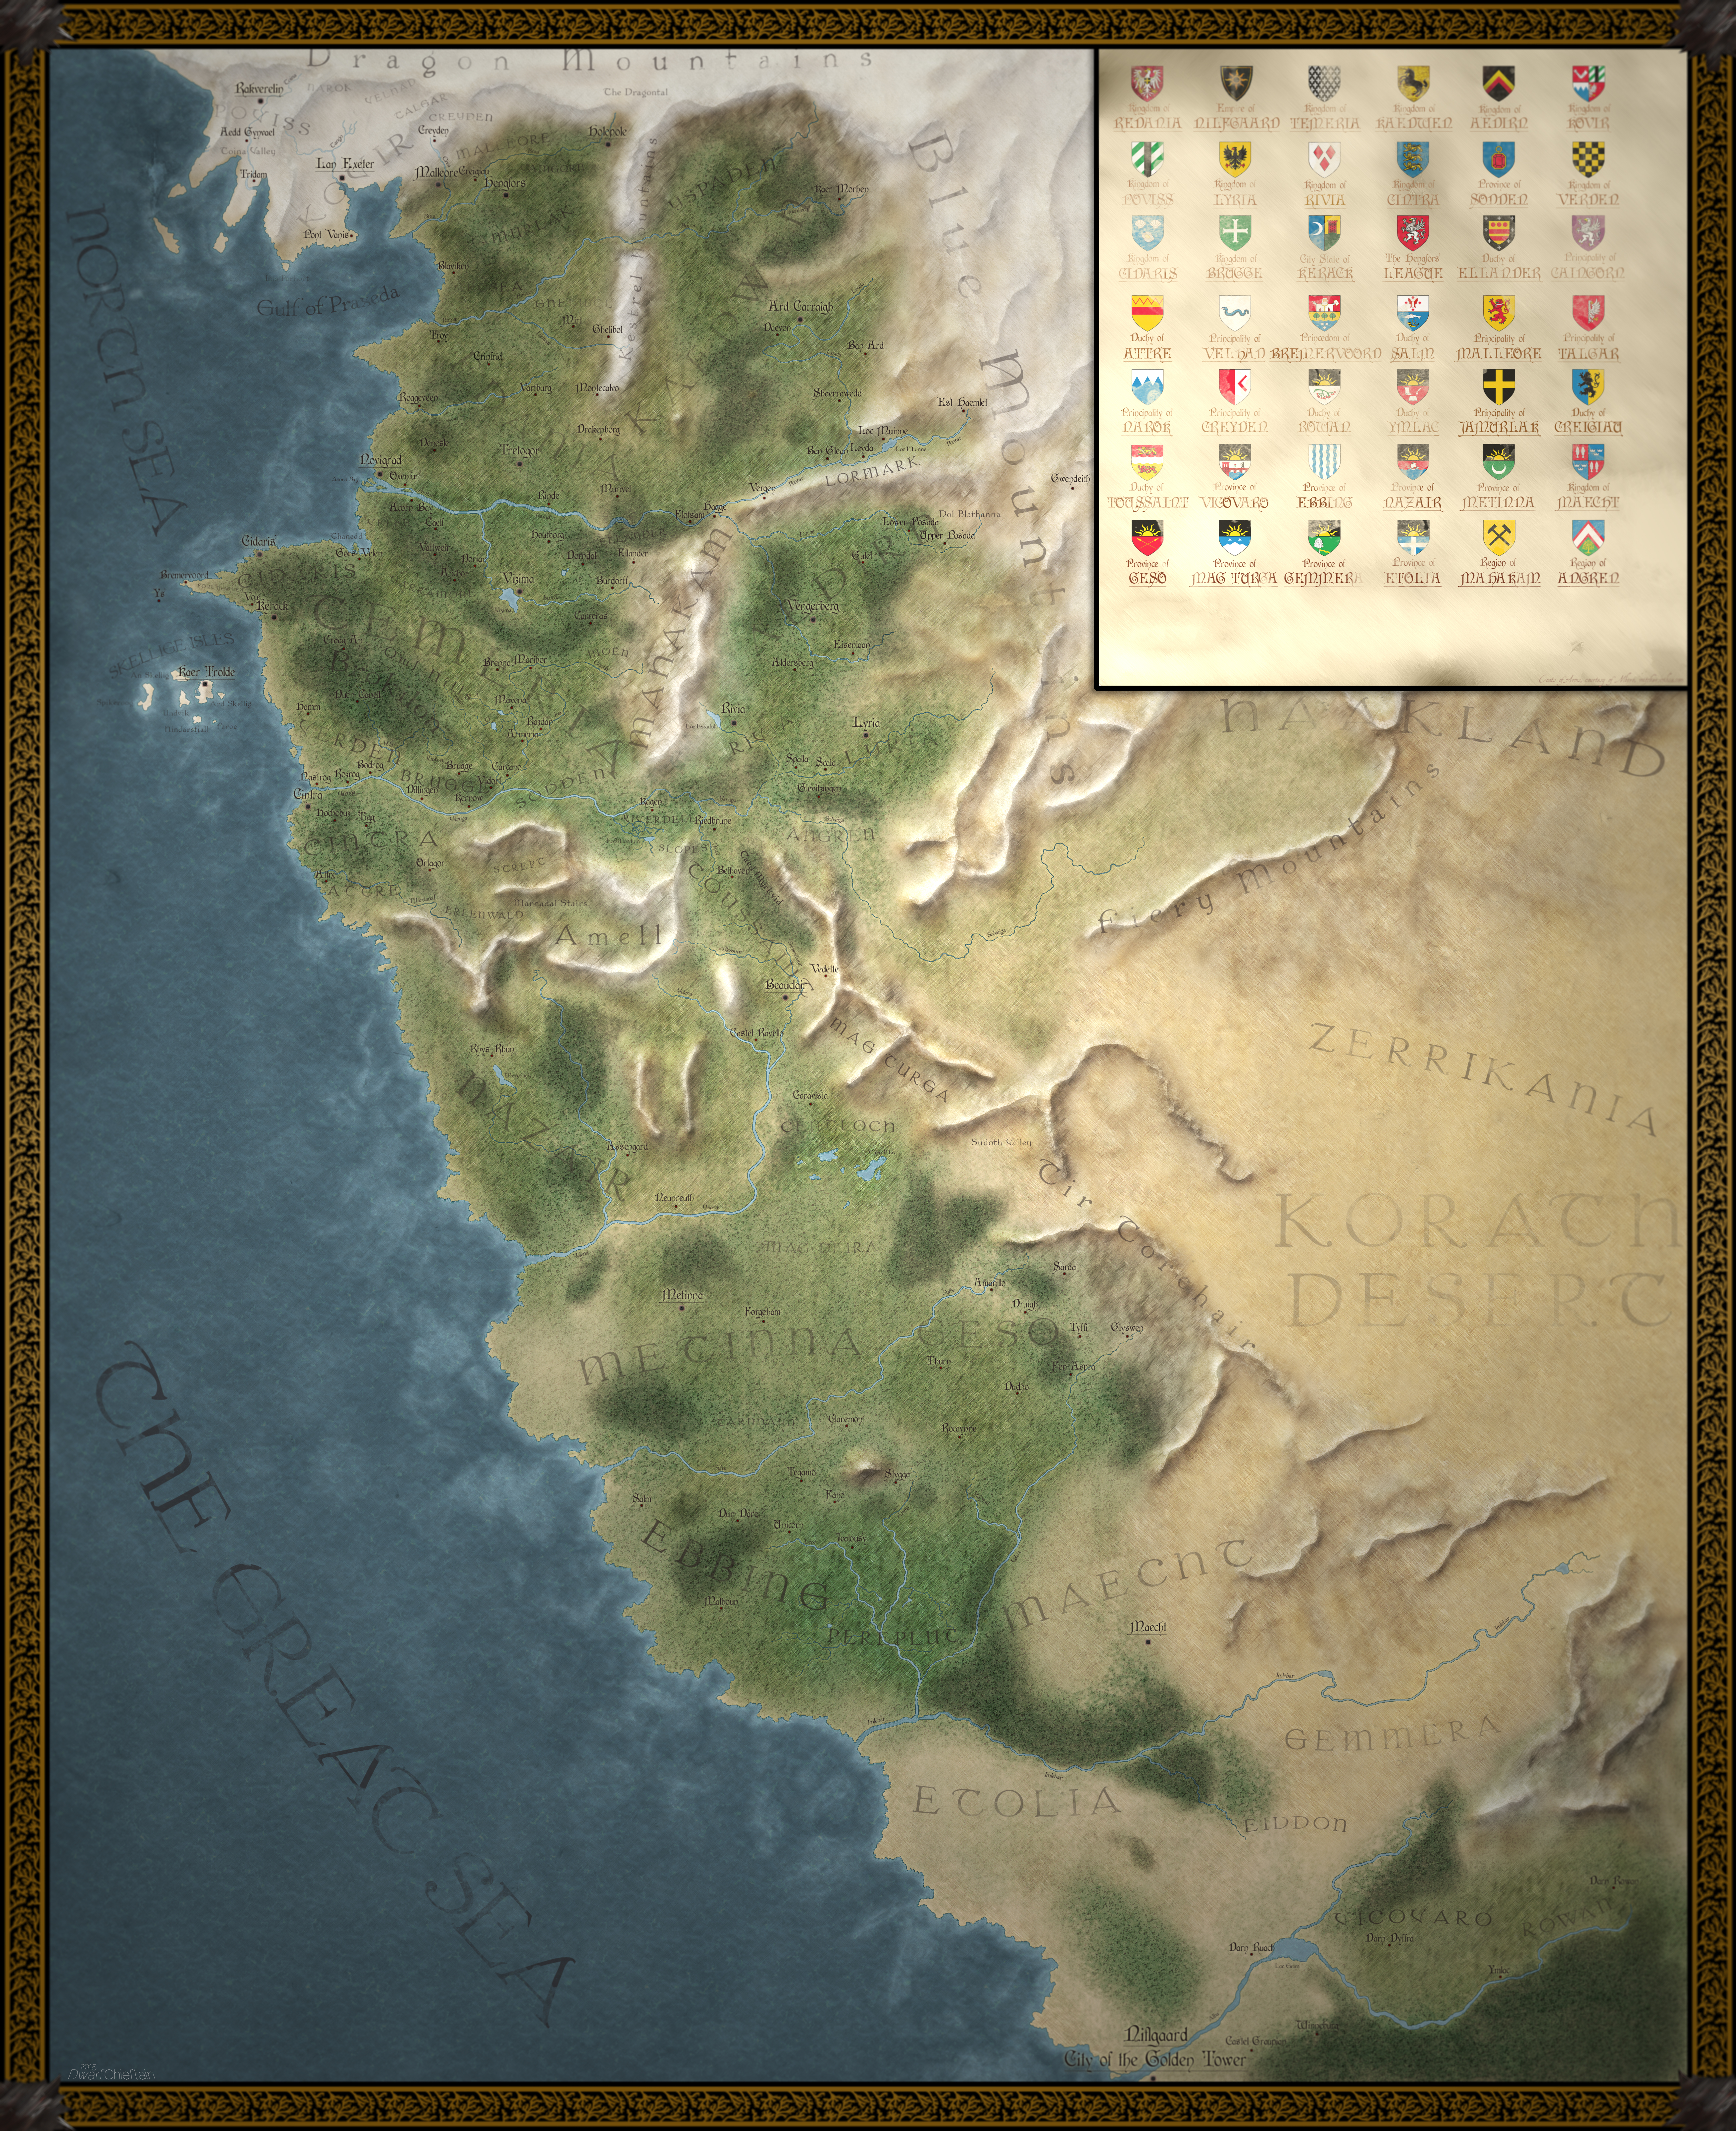 The Witcher World Map by MartynasB on DeviantArt